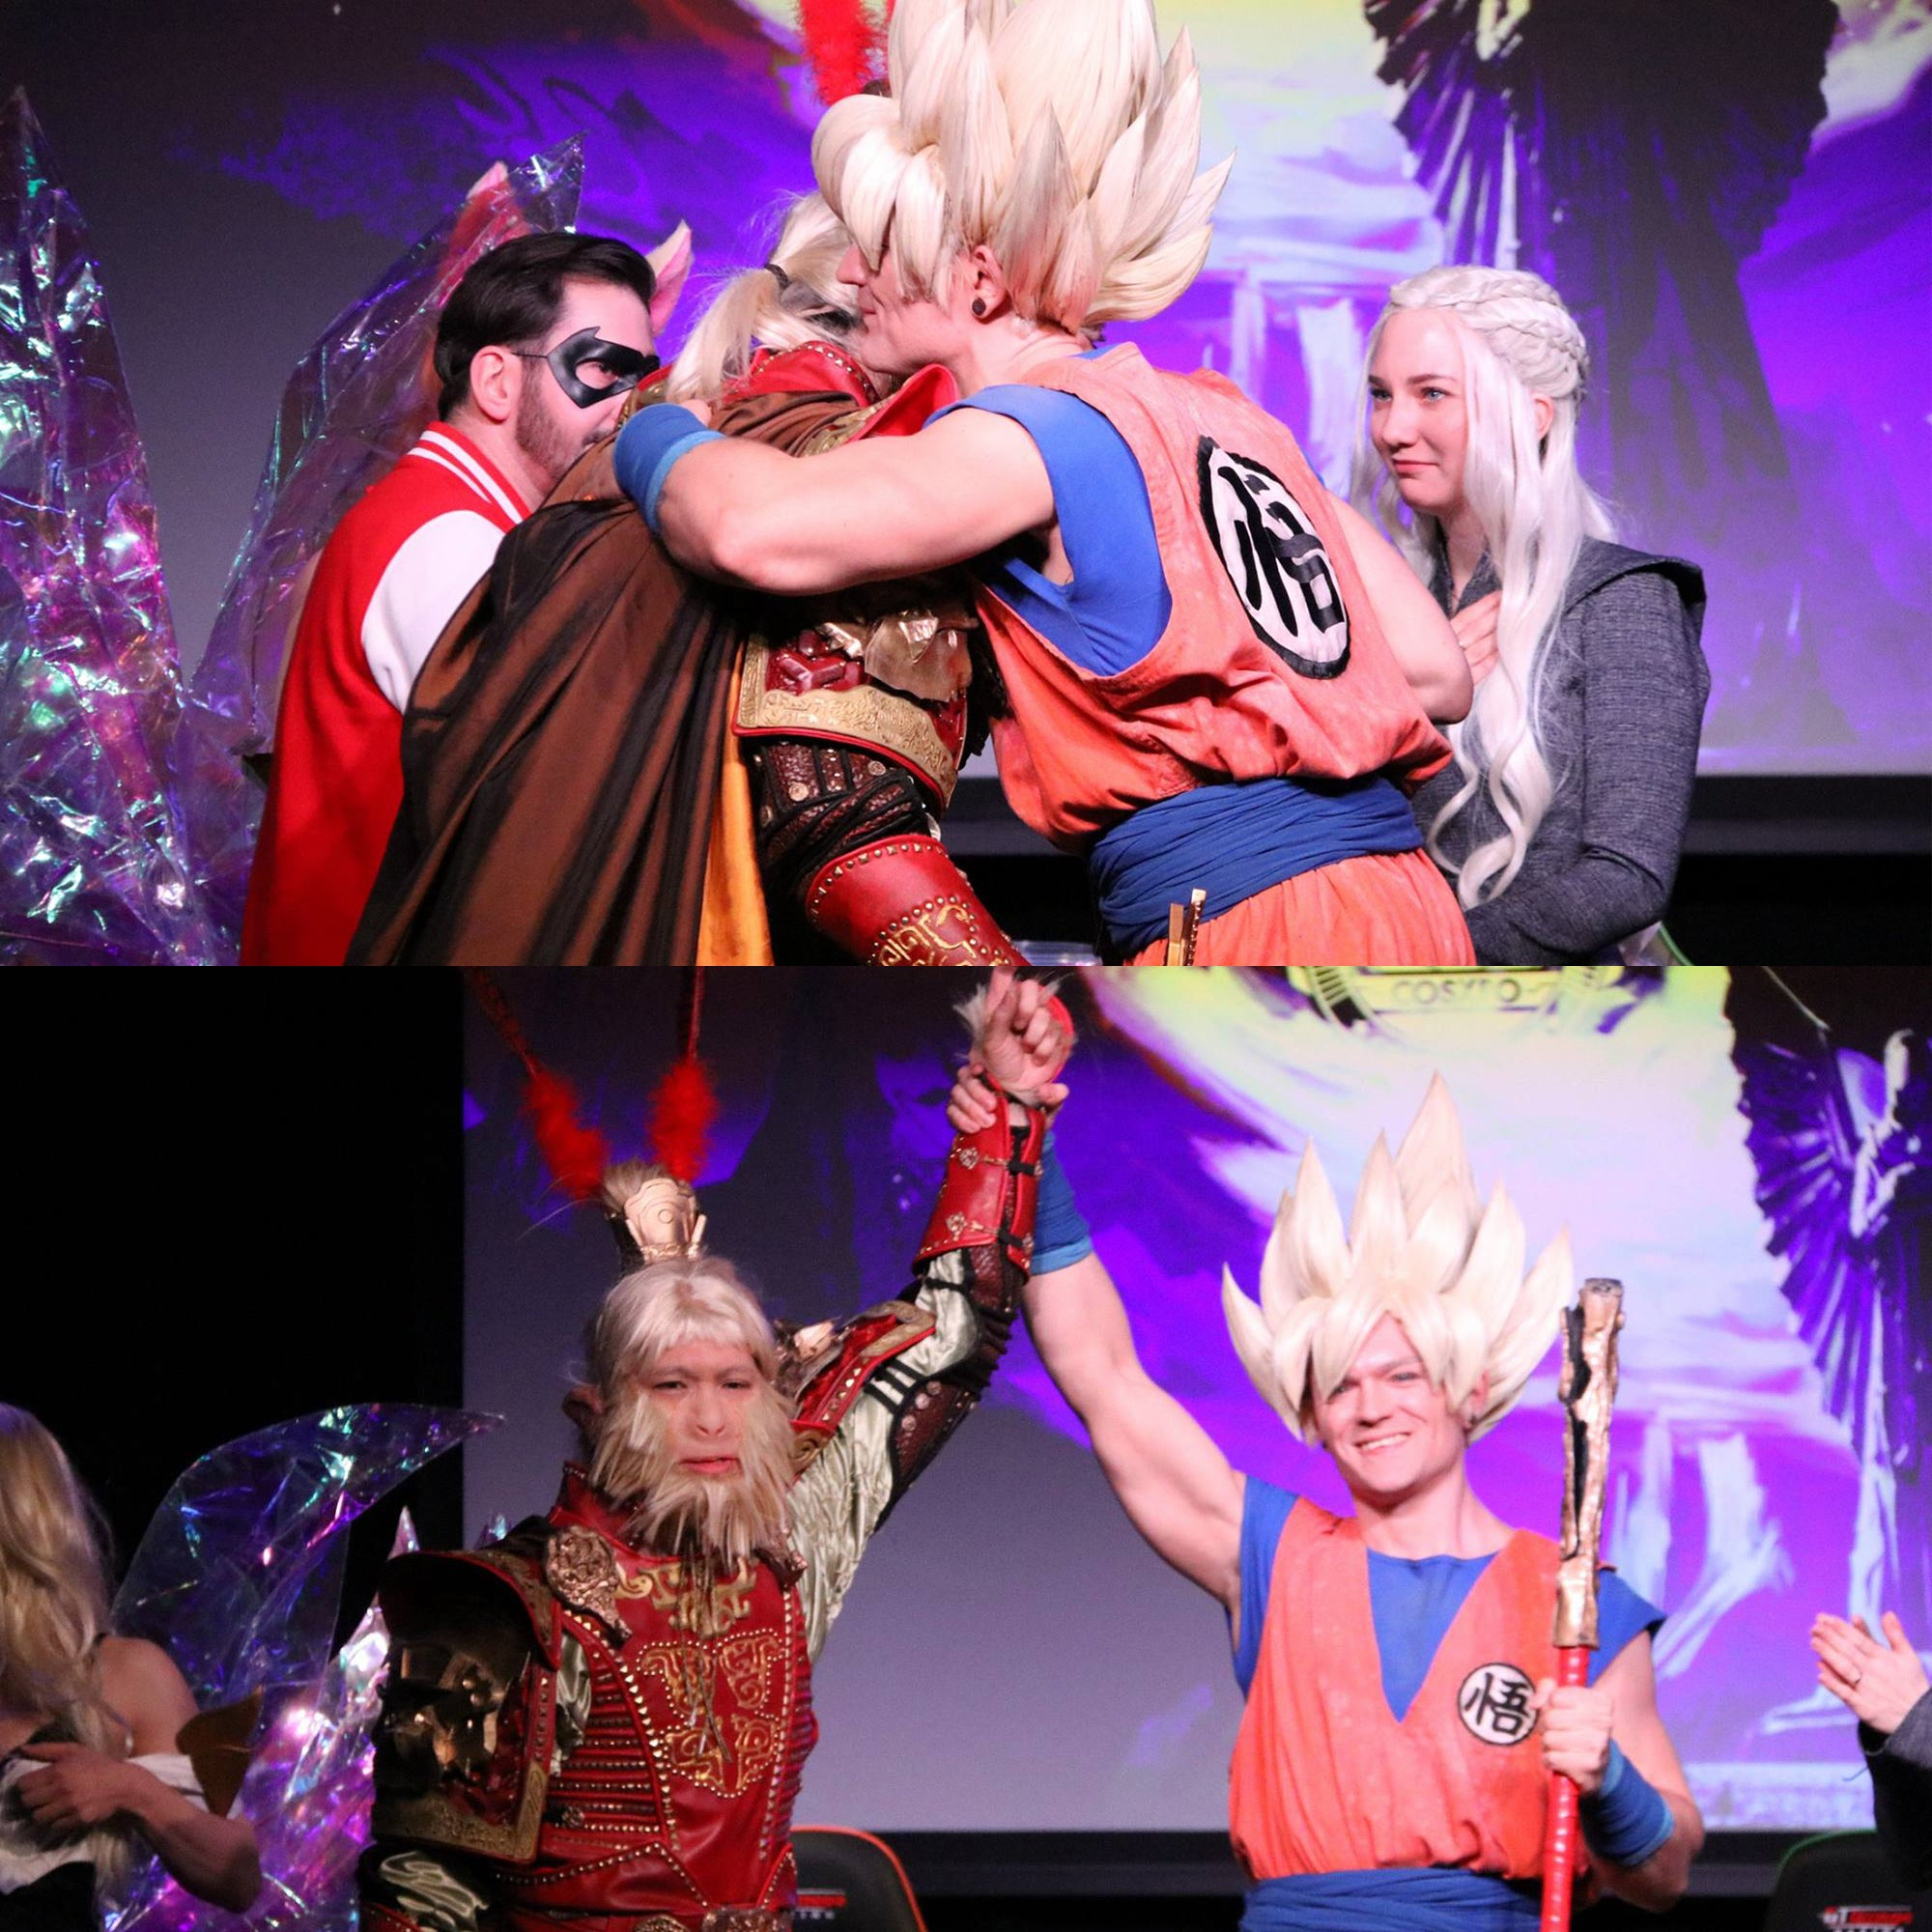 Sun Wukong hugs Son Goku - cosplays from journey to the west and Dragonball